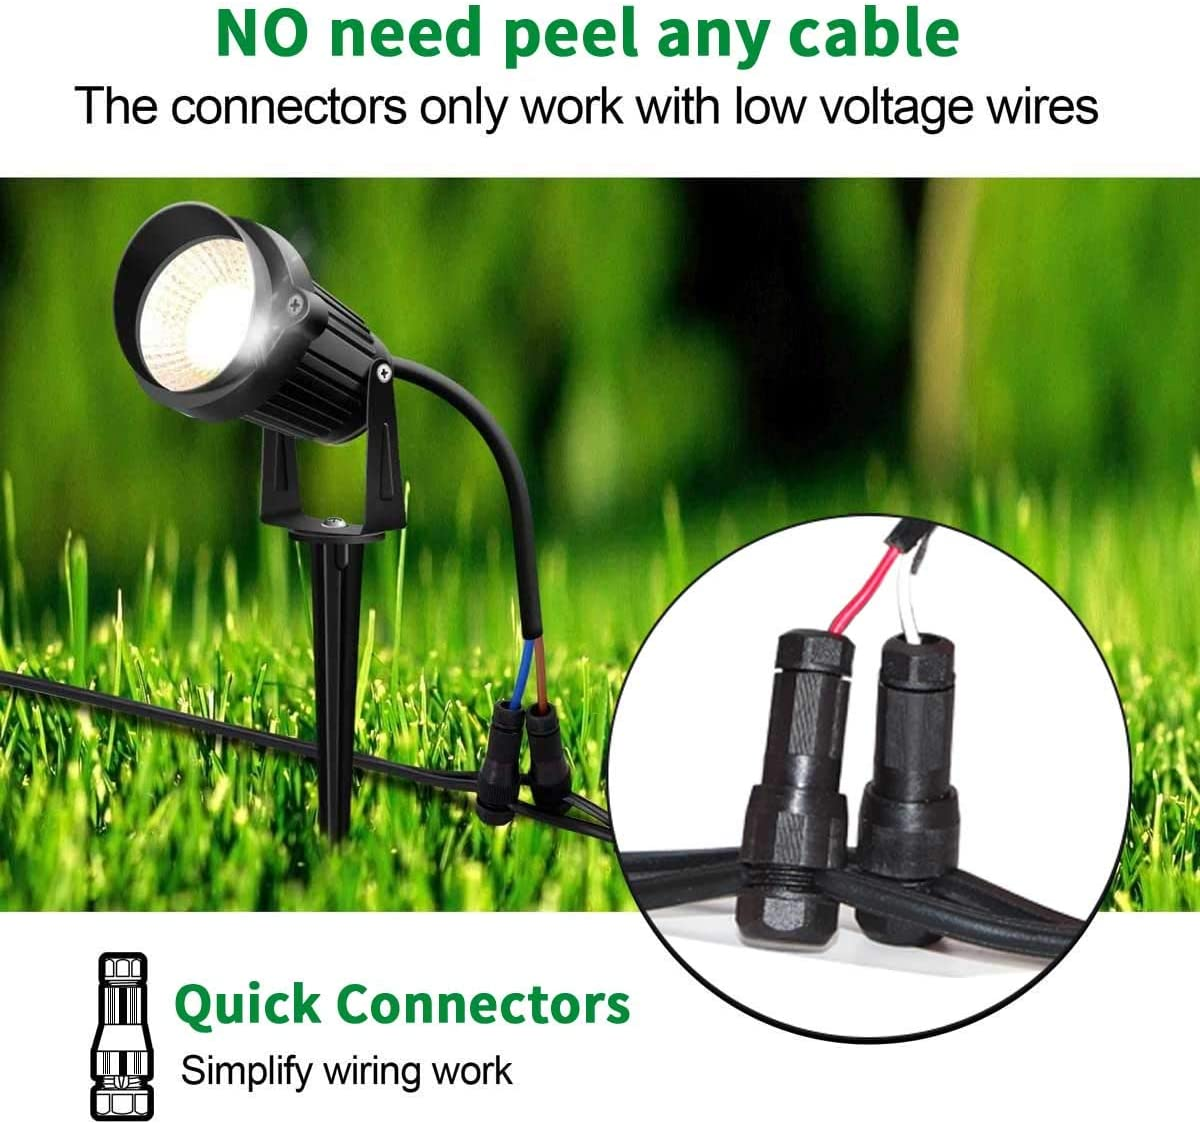 Hypergiant Fastlock Twist Low Voltage Wire Connector 24 Pack,Landscape Lighting Connector for 12-14 Gauge Cable,Outdoor Lights Connector for Garden,Path,Yard Lights Work with Malibu Paradise Moonray